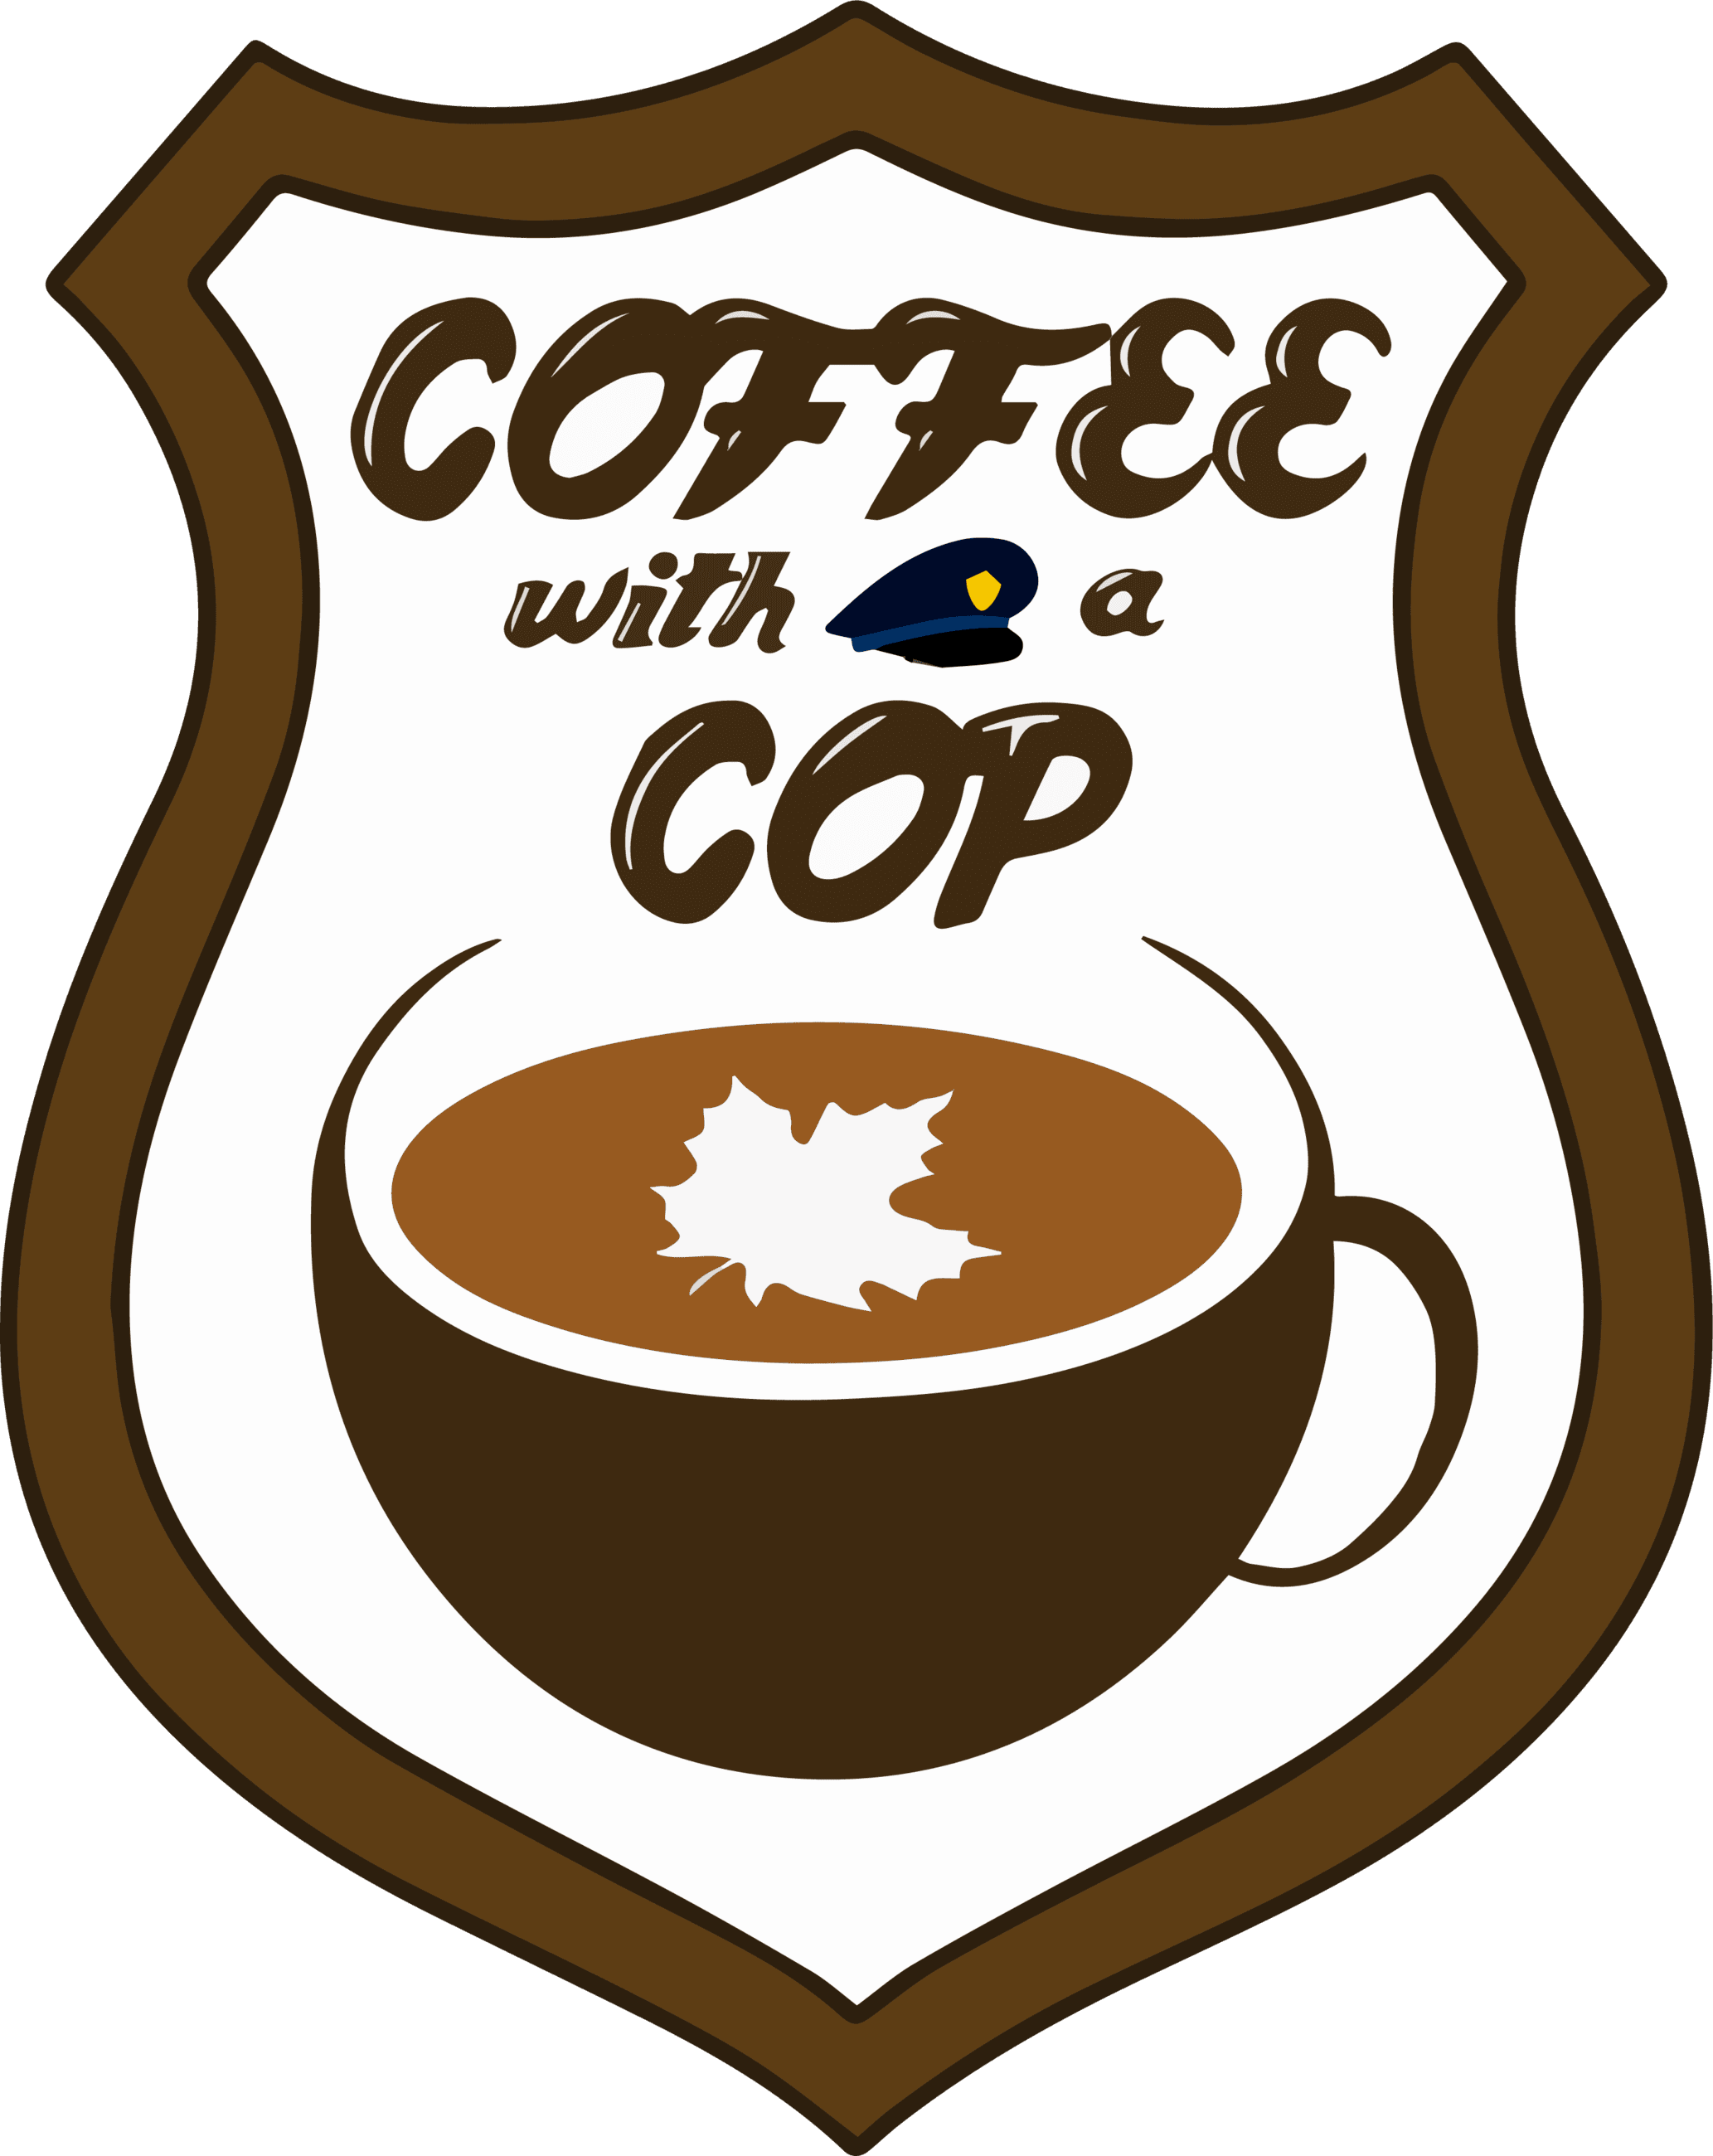 Coffee with a cop v2 ALPHA